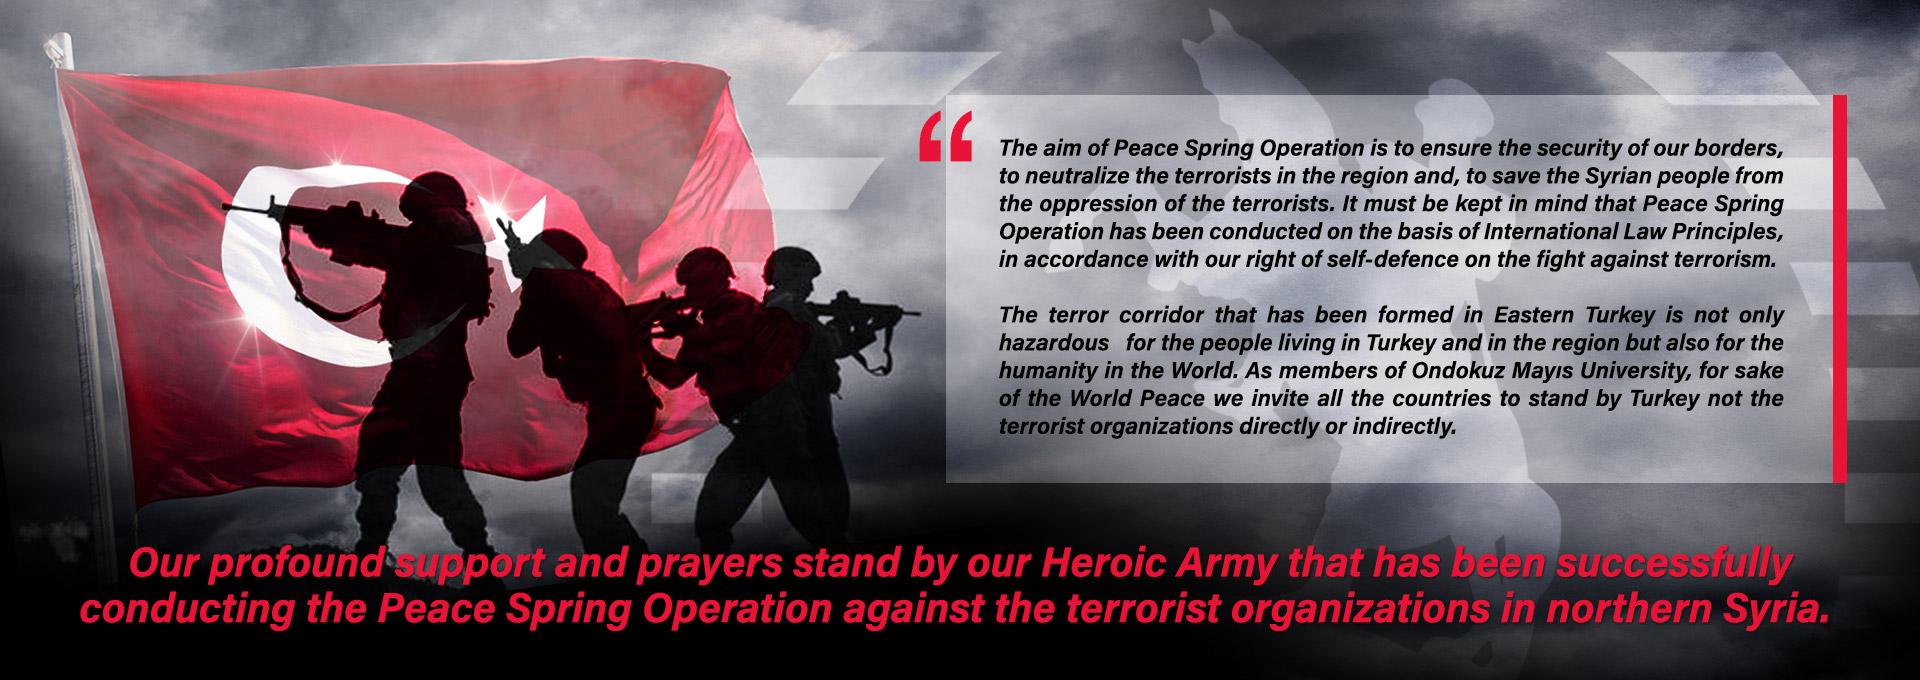 Our profound support and prayers stand by our Heroic Army that has been successfully conducting the Peace Spring Operation against the terrorist organizations in northern Syria.